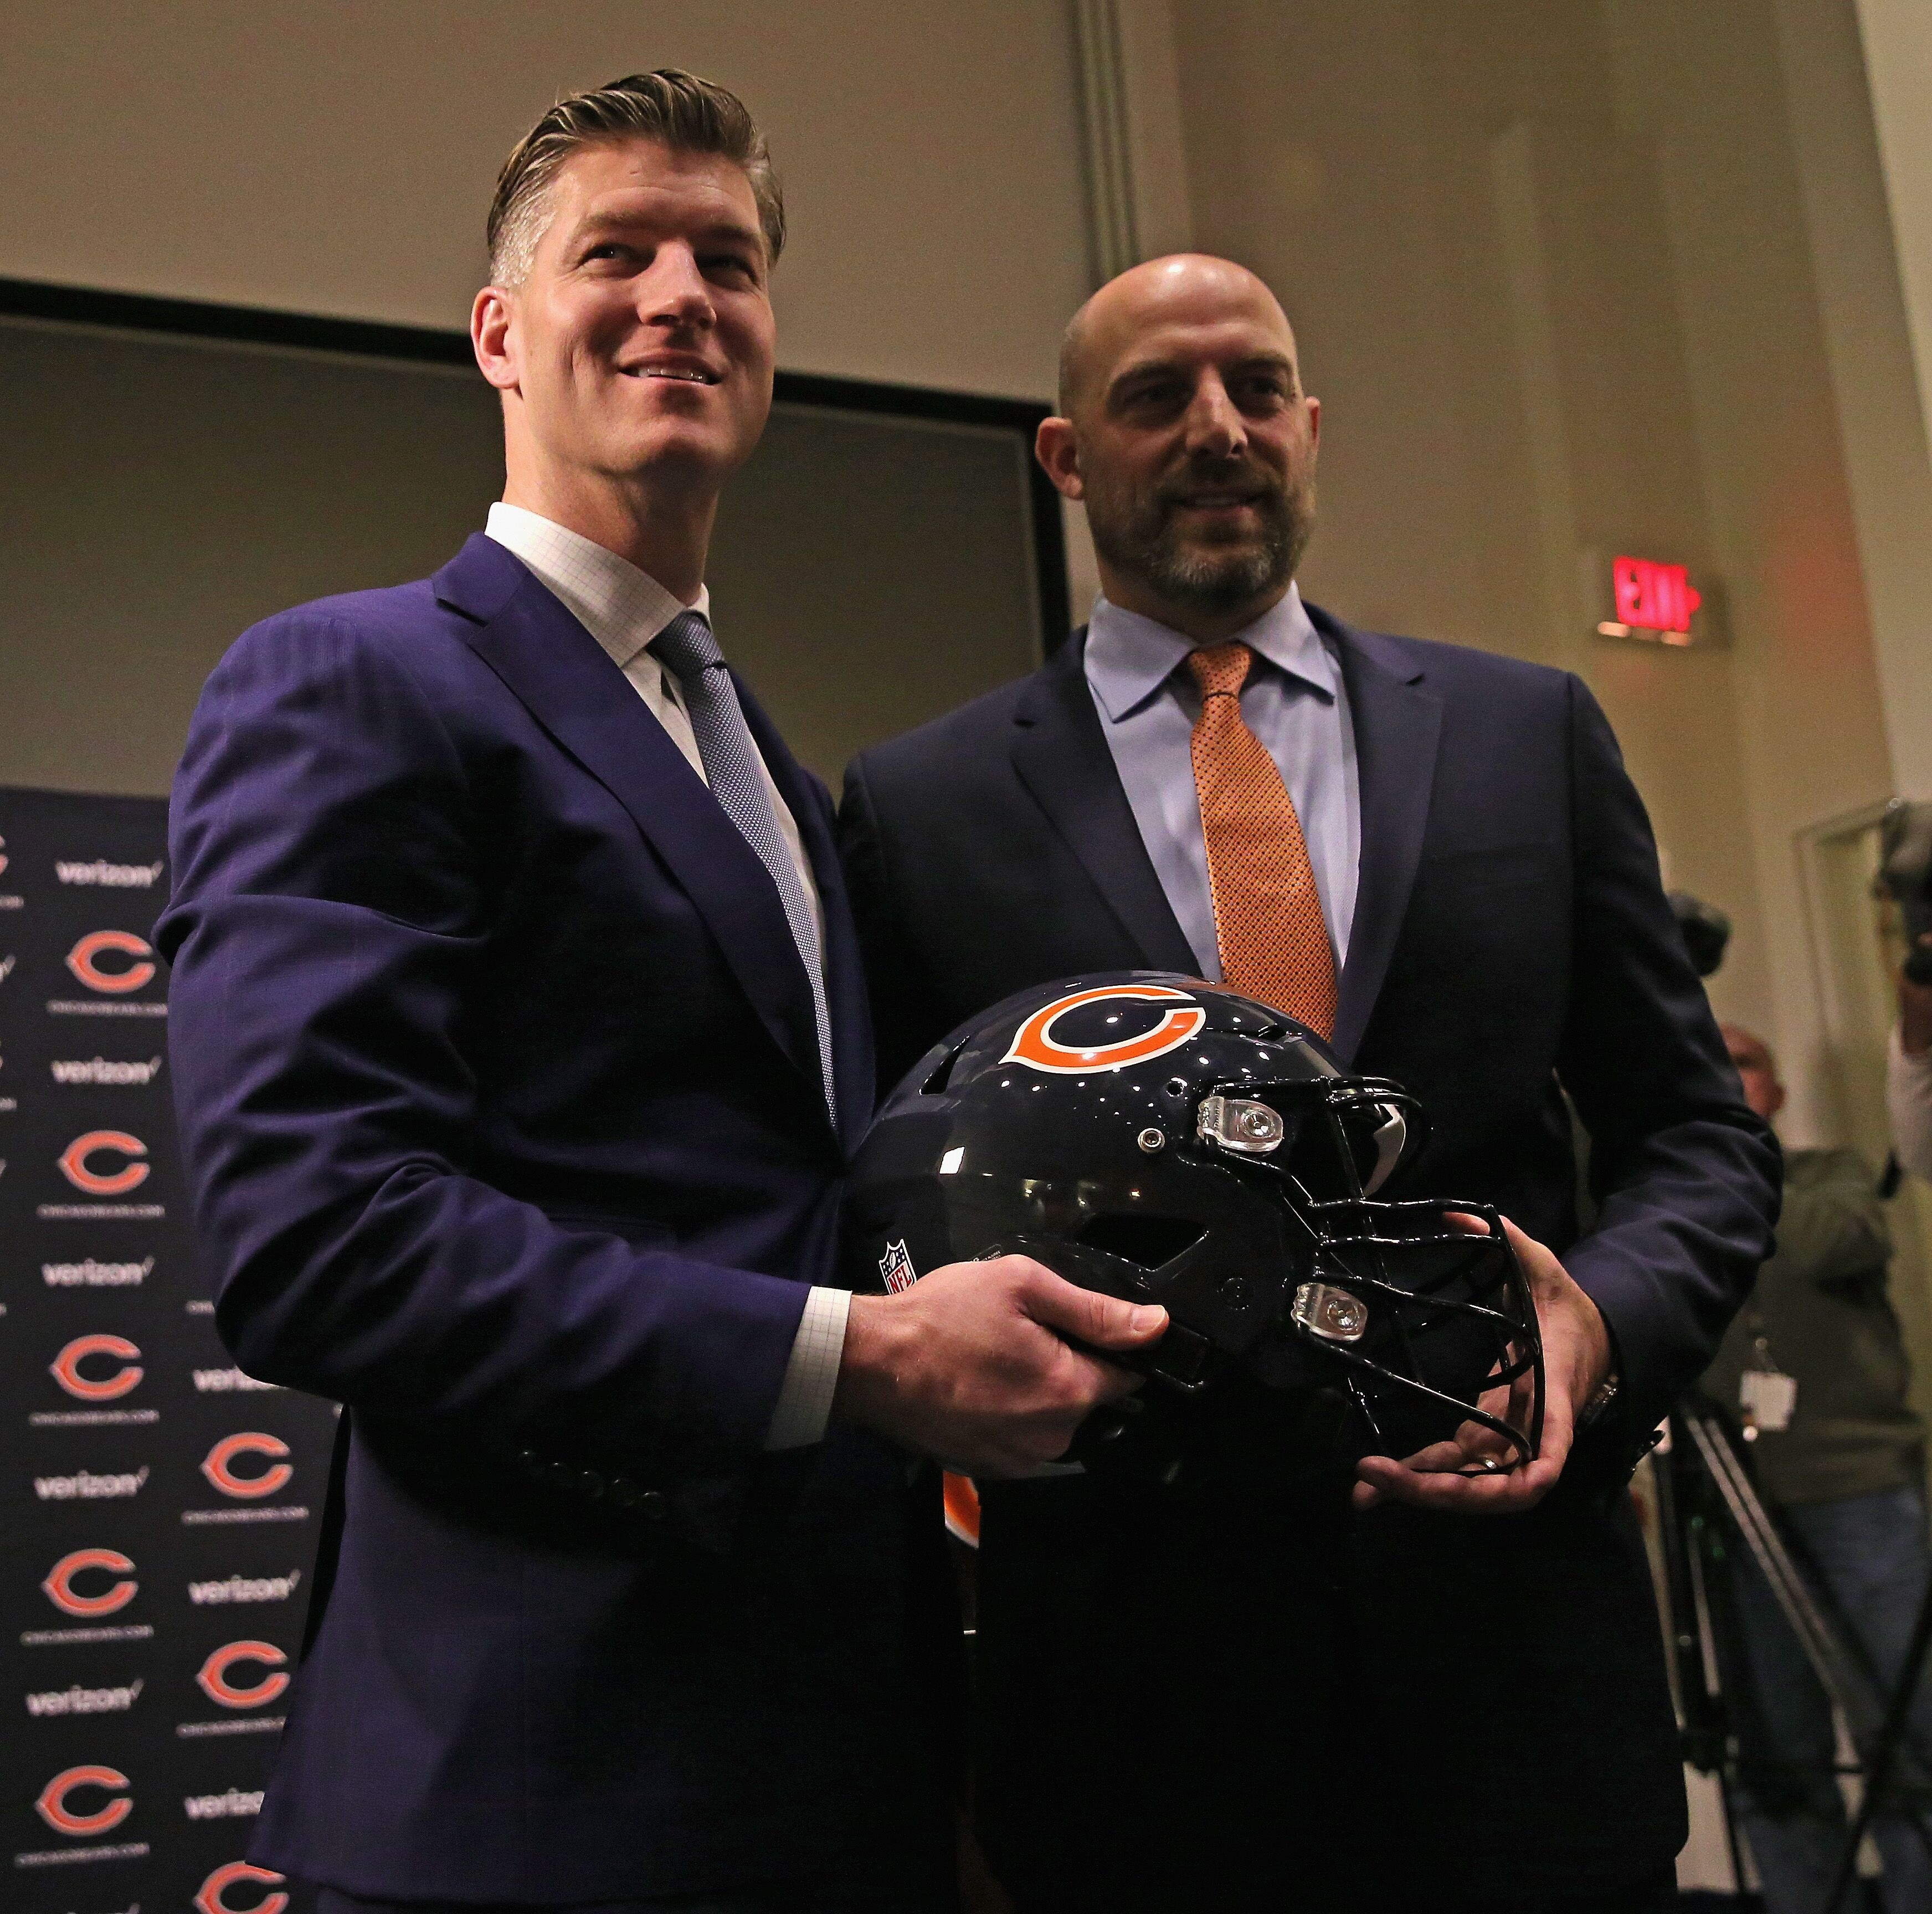 903072200-chicago-bears-introduce-matt-nagy.jpg